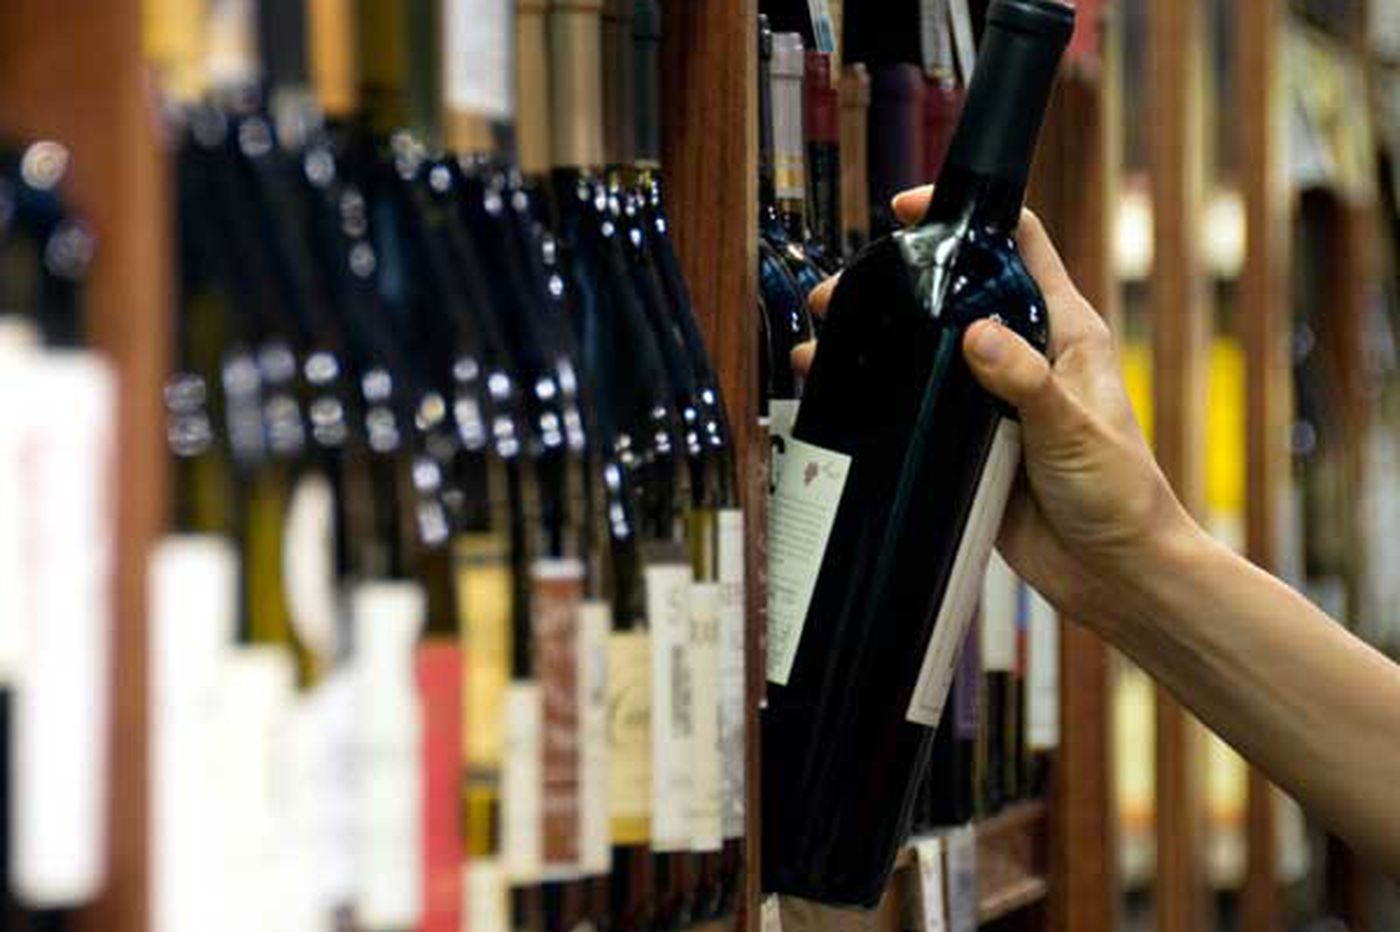 Private liquor spells doom for PA, groups say